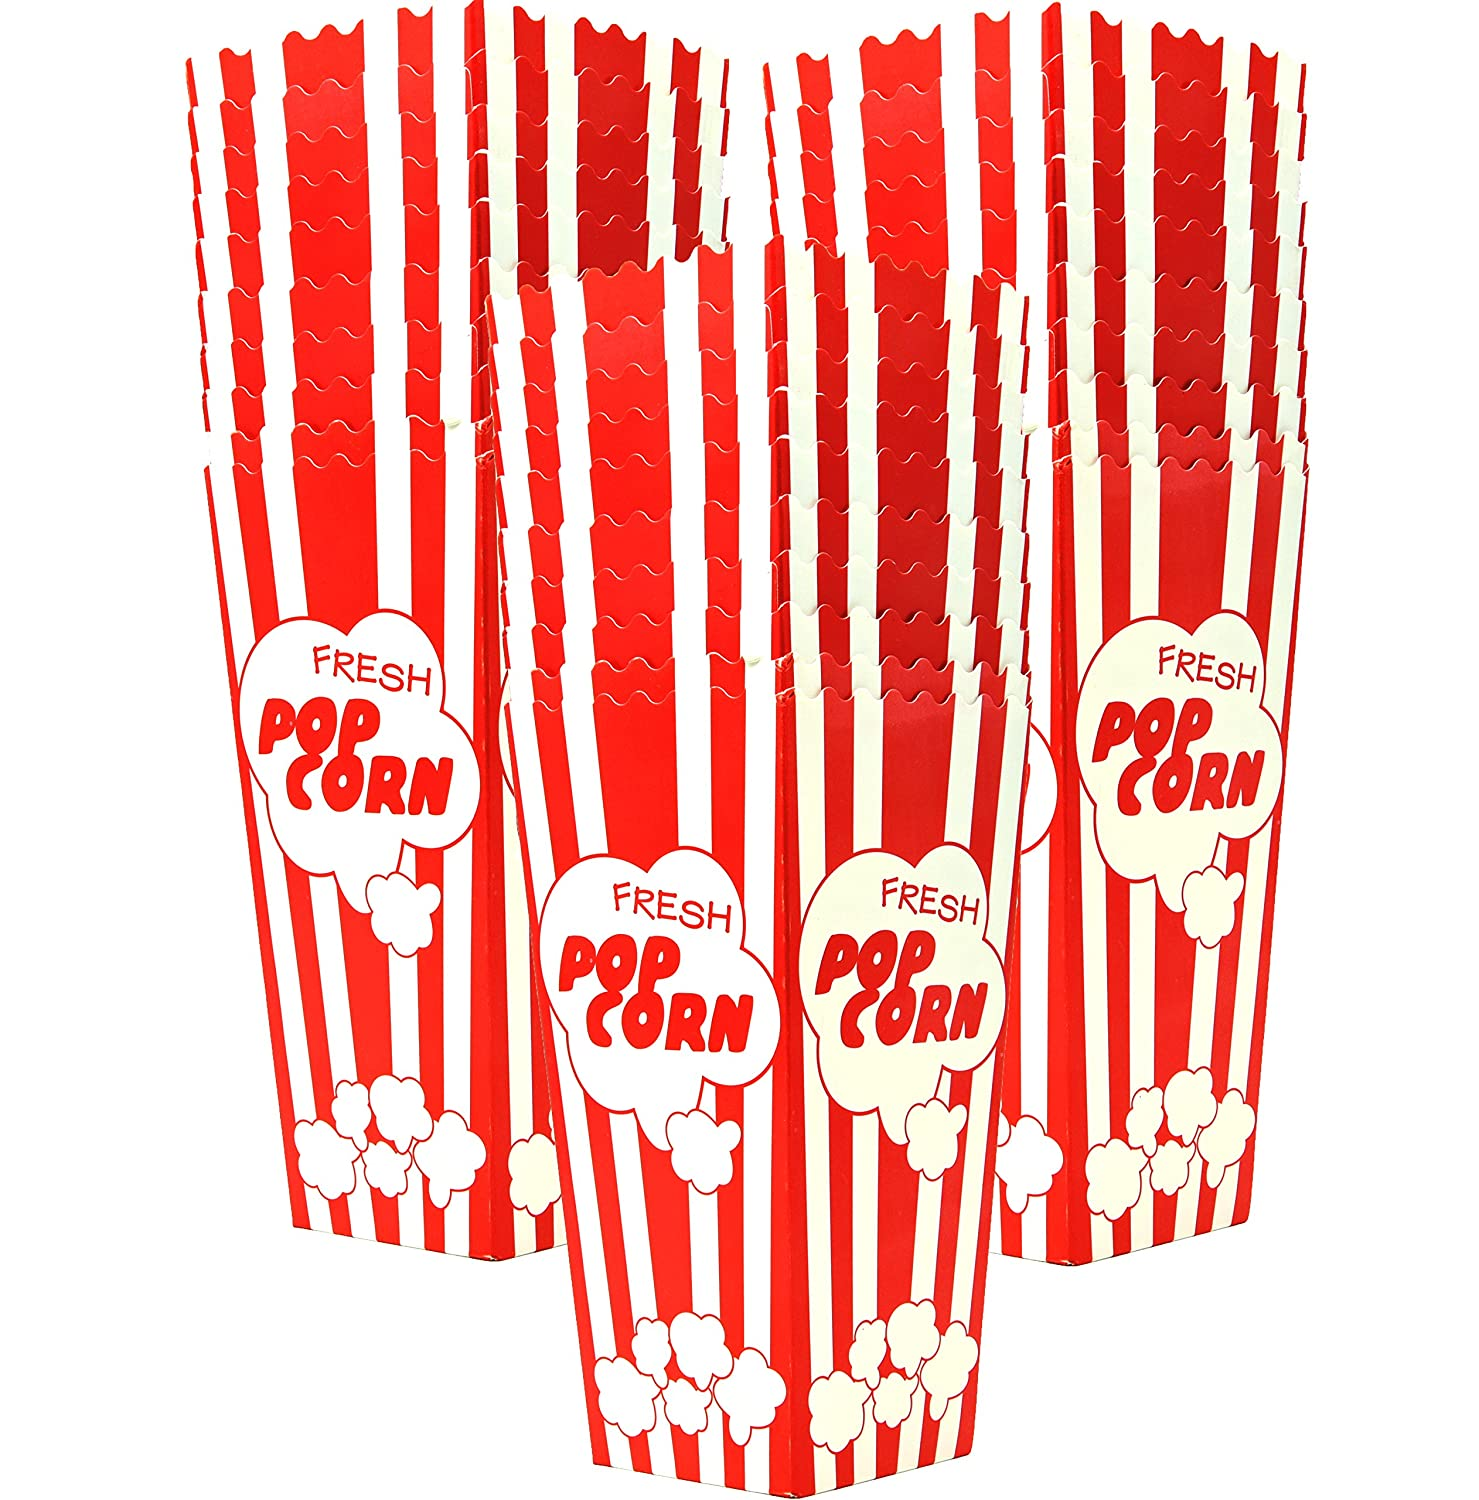 "30 Popcorn Boxes, 7.75"" Inches Tall and Holds 46 Oz. with Old Fashion Vintage Retro Design with Red and White Colored Nostalgic Carnival Stripes Alternative to Popcorn Bags and Popcorn Tubs by Salbree"